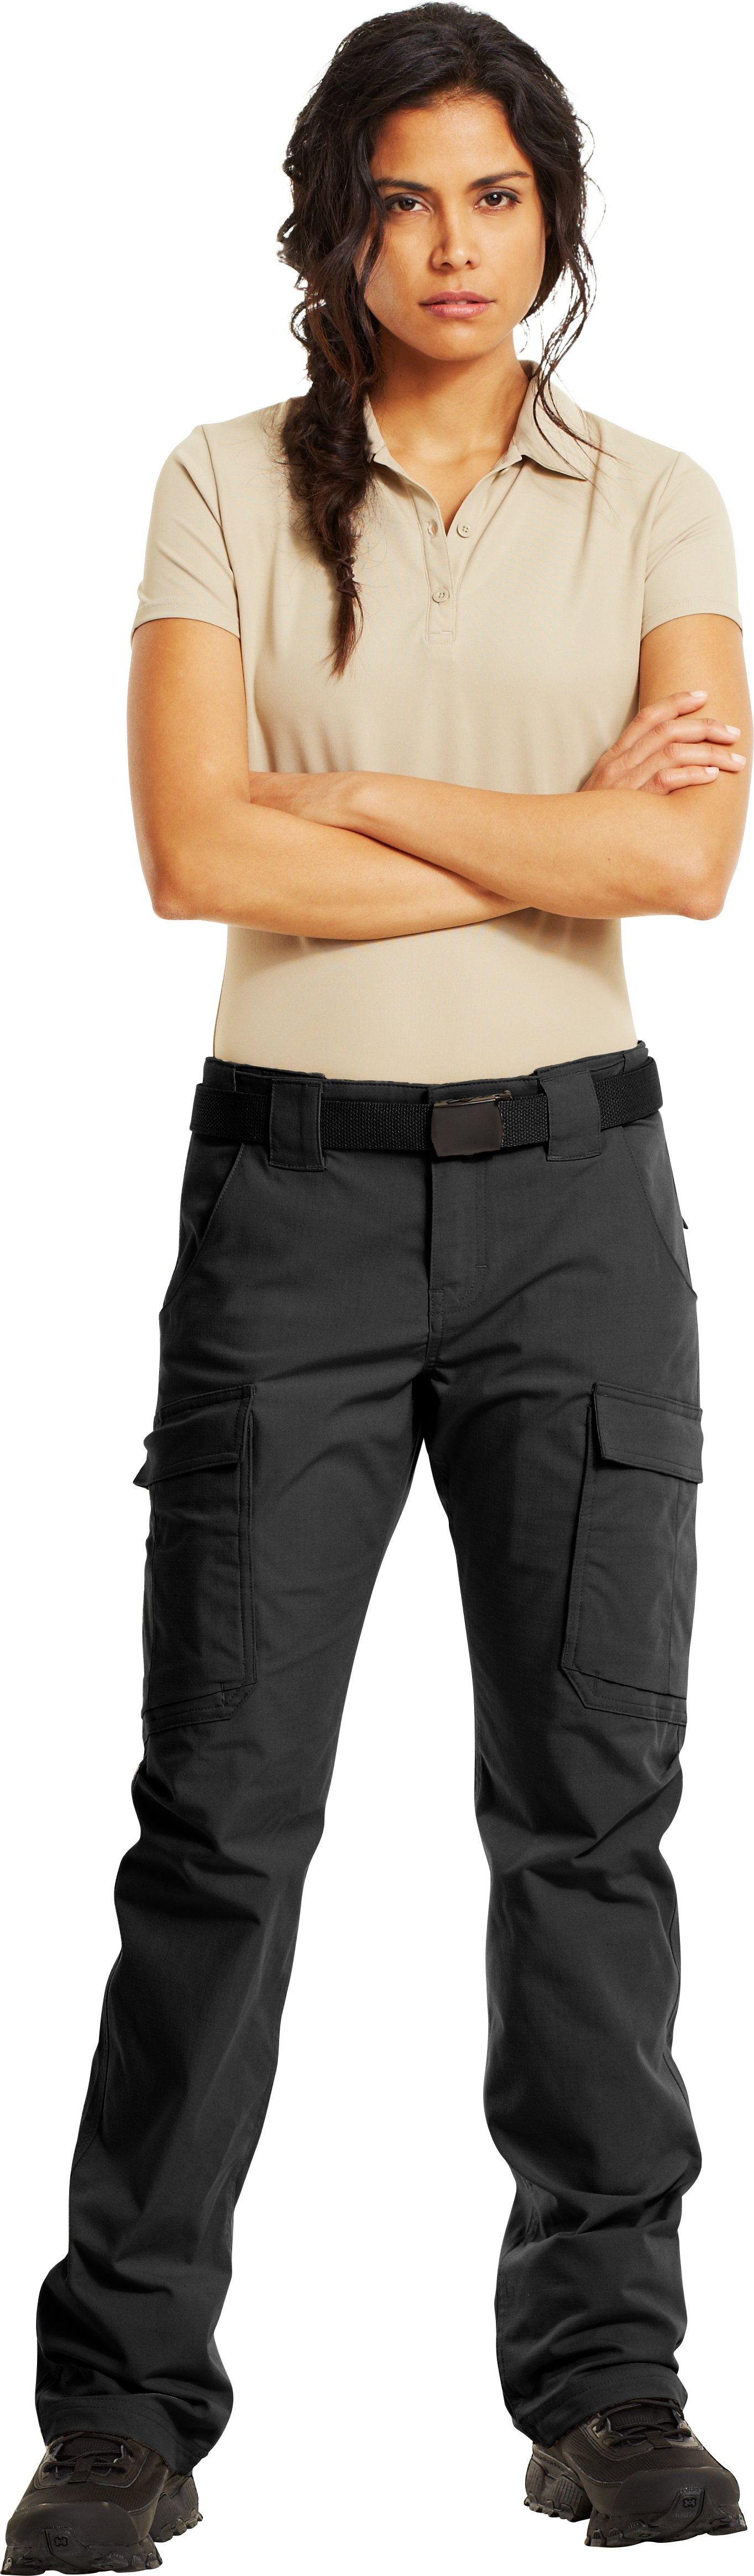 Women's Tactical Duty Pants, Black , Front